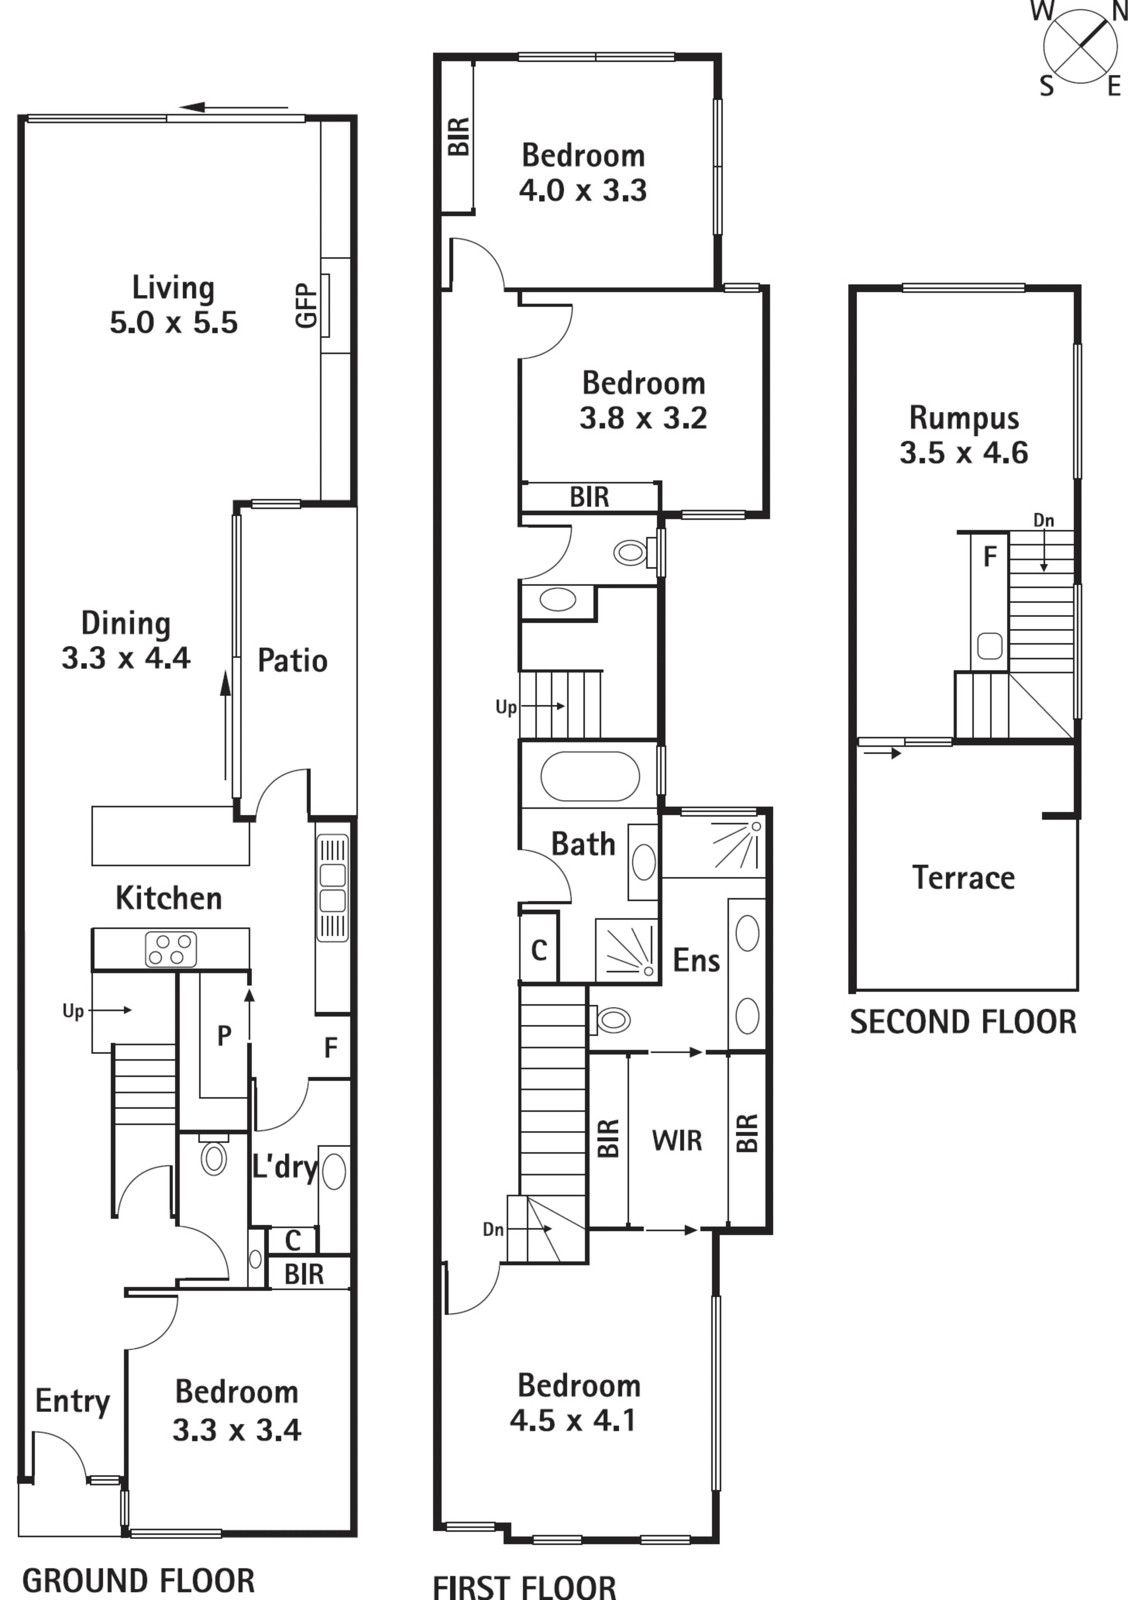 camelback shotgun floor plan camelback shotgun pinterest